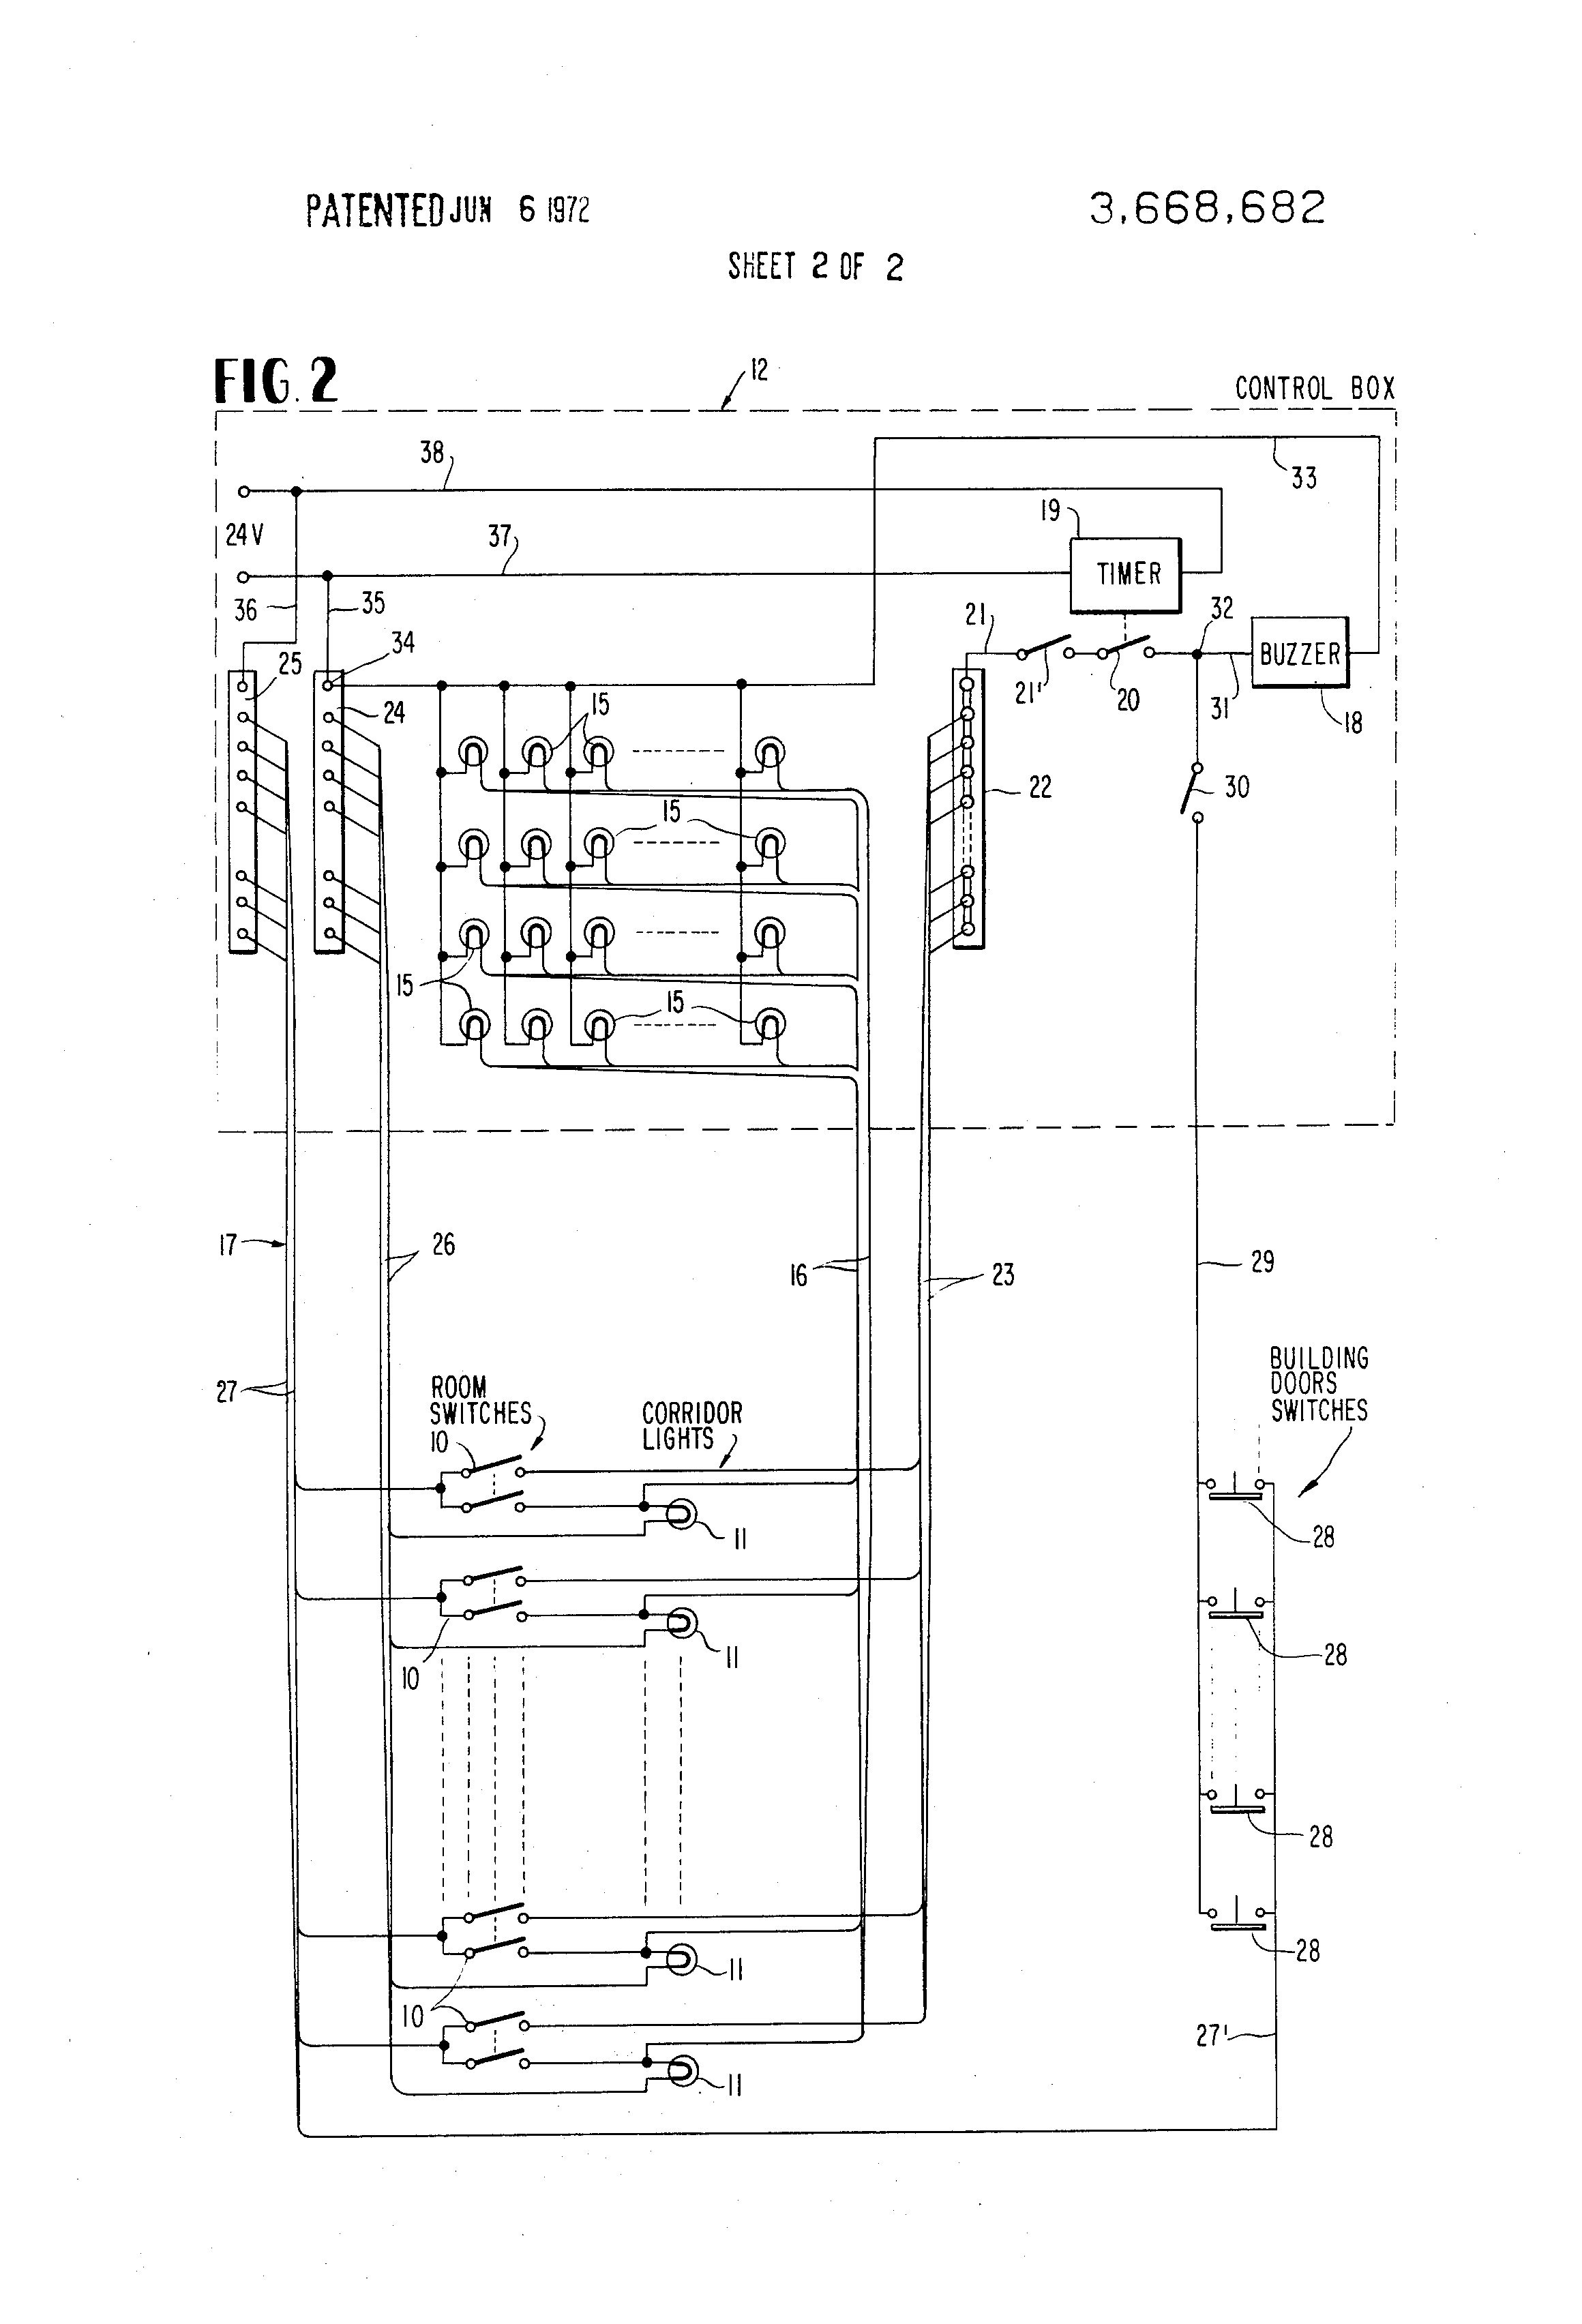 Corridor Lighting Wiring Diagram 32 Images Dial Dimmer Switch Us3668682 2 Patent Nurse Call And Alarm System For Nursing Homes